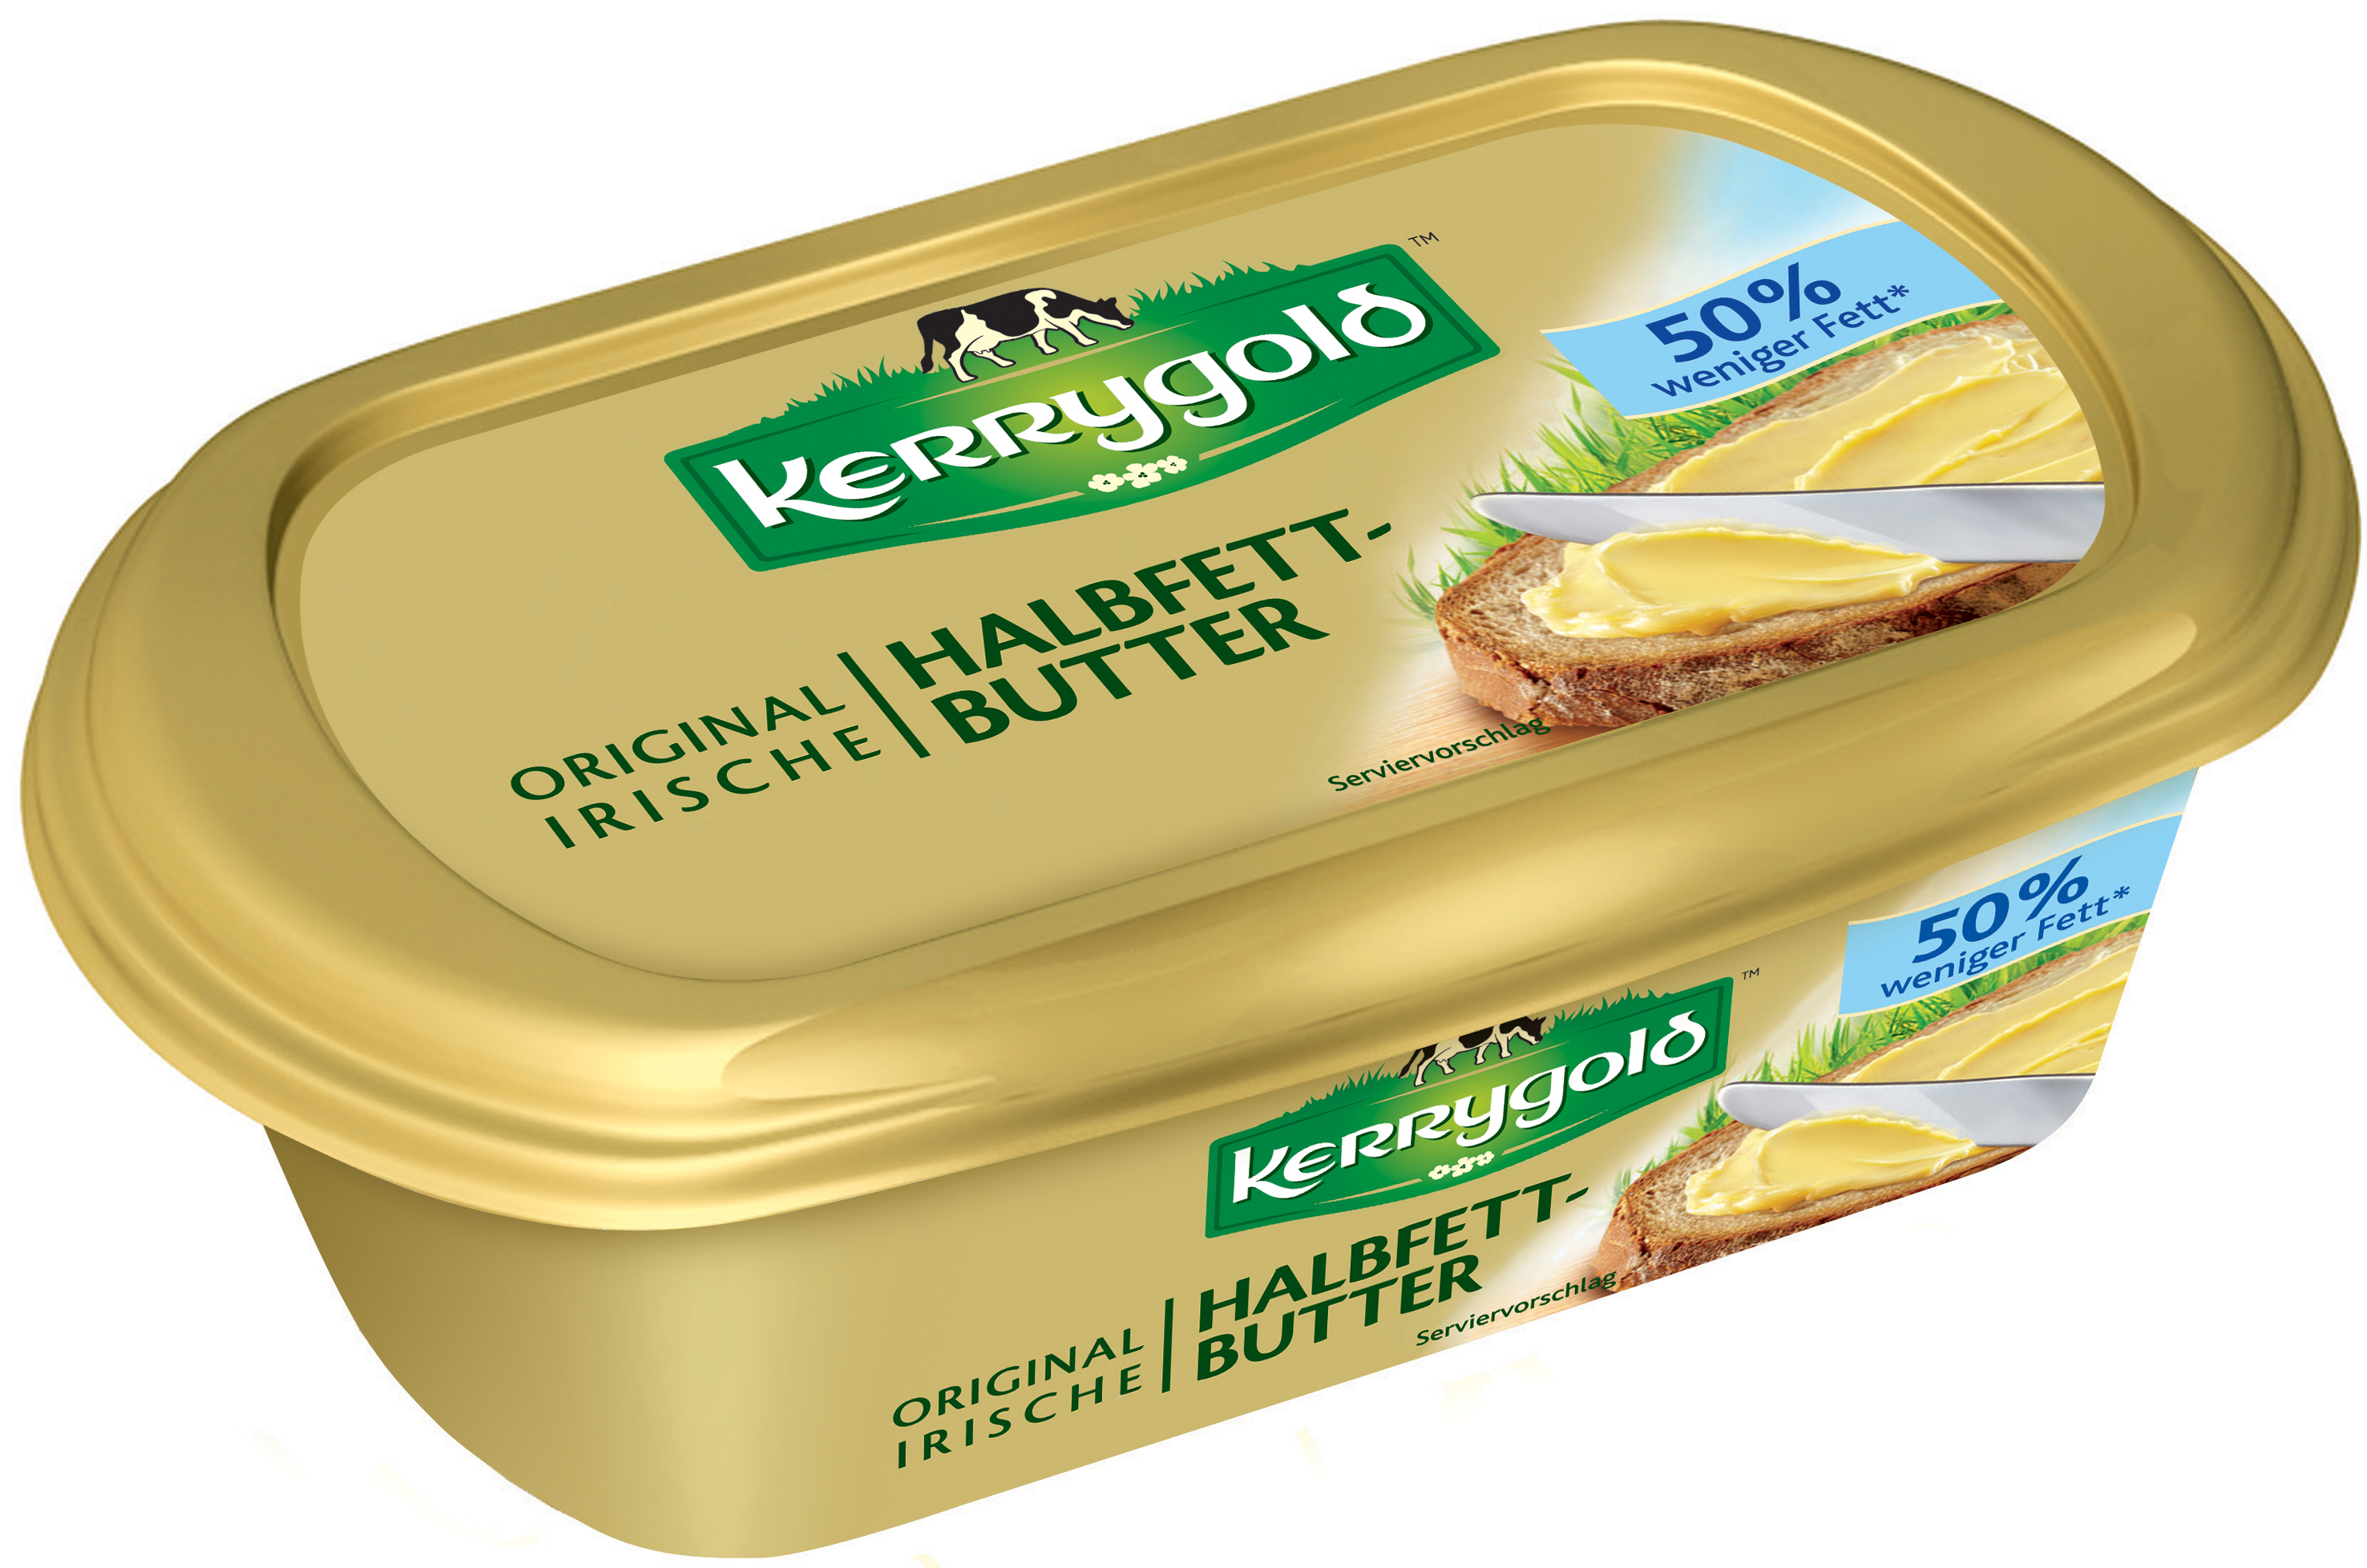 kerrygold original irische halbfettbutter 200g im becher 200 gramm idb deutschland gmbh butter. Black Bedroom Furniture Sets. Home Design Ideas